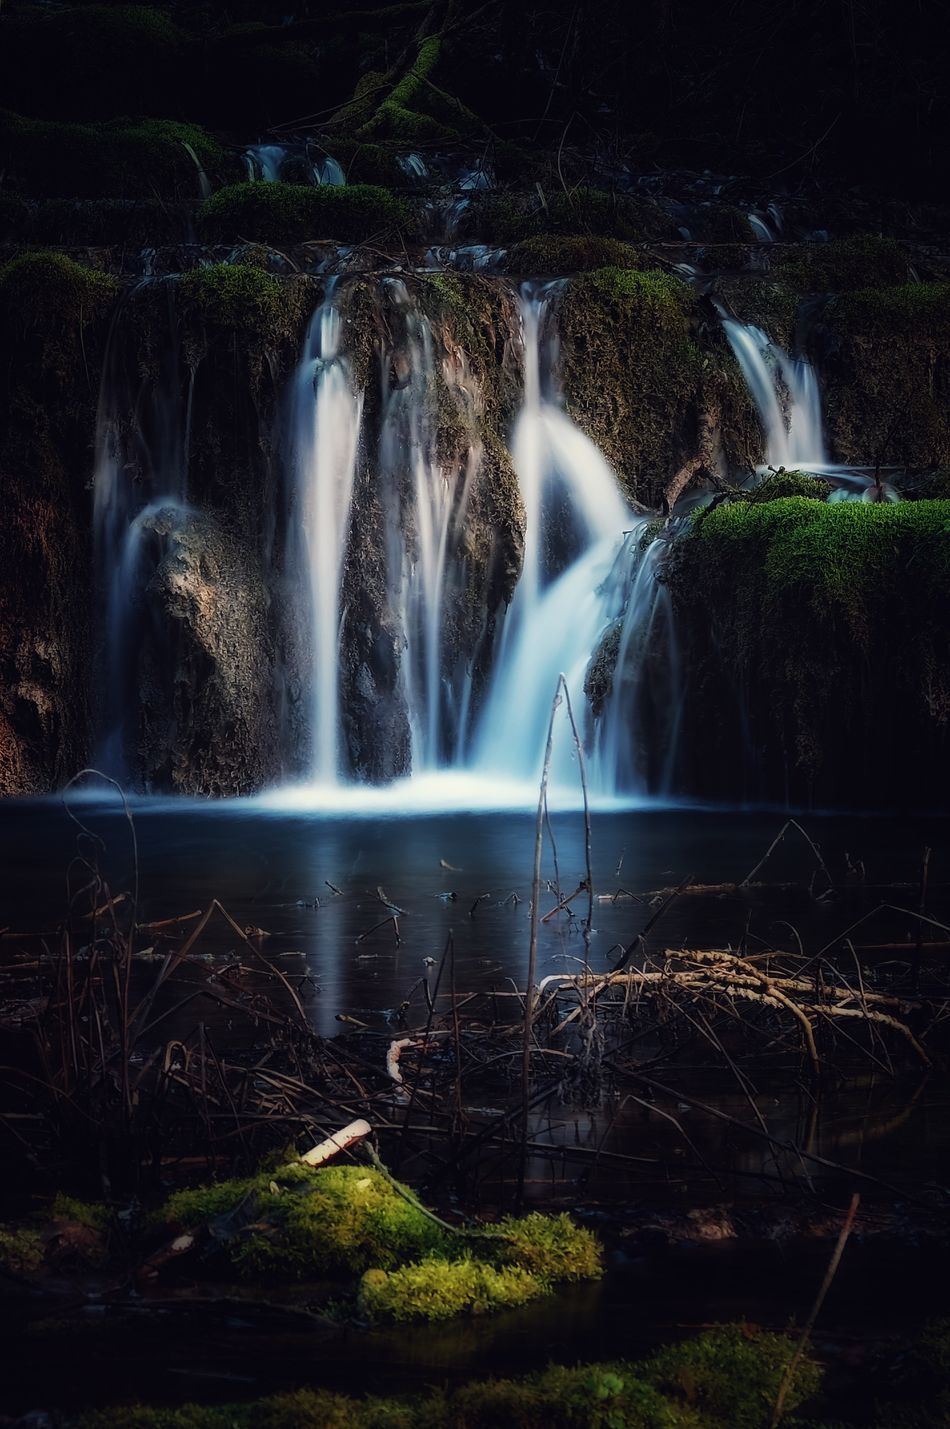 Falling water Waterfall Water Long Exposure Vacations Flowing Water Motion Beauty Beauty In Nature No People Nature Smooth Scenics Stream - Flowing Water Power In Nature Outdoors Fujifilm Edited Fuji Taking Photos